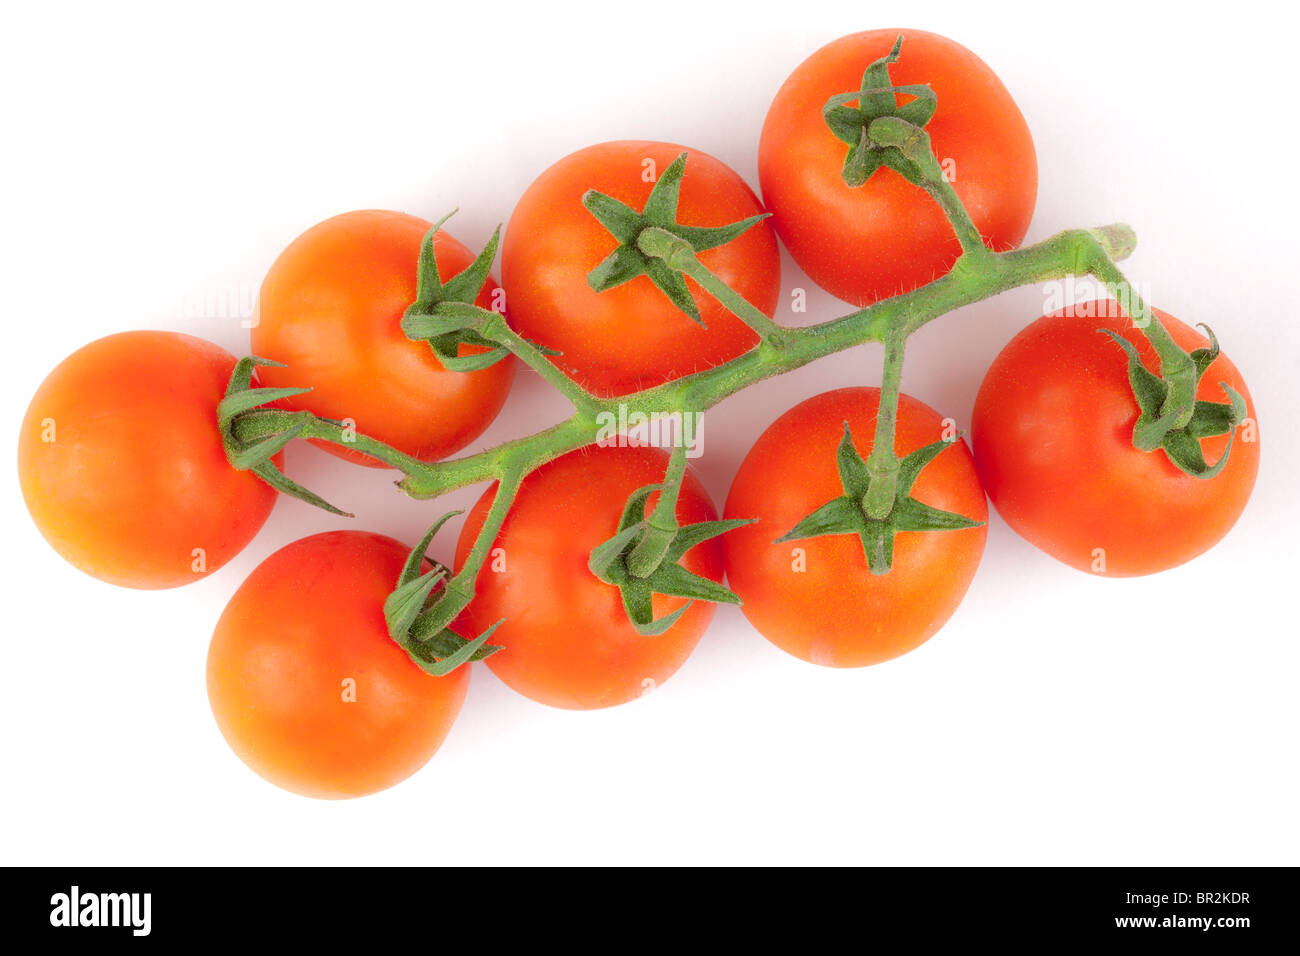 Tomatoes on the vine - Stock Image